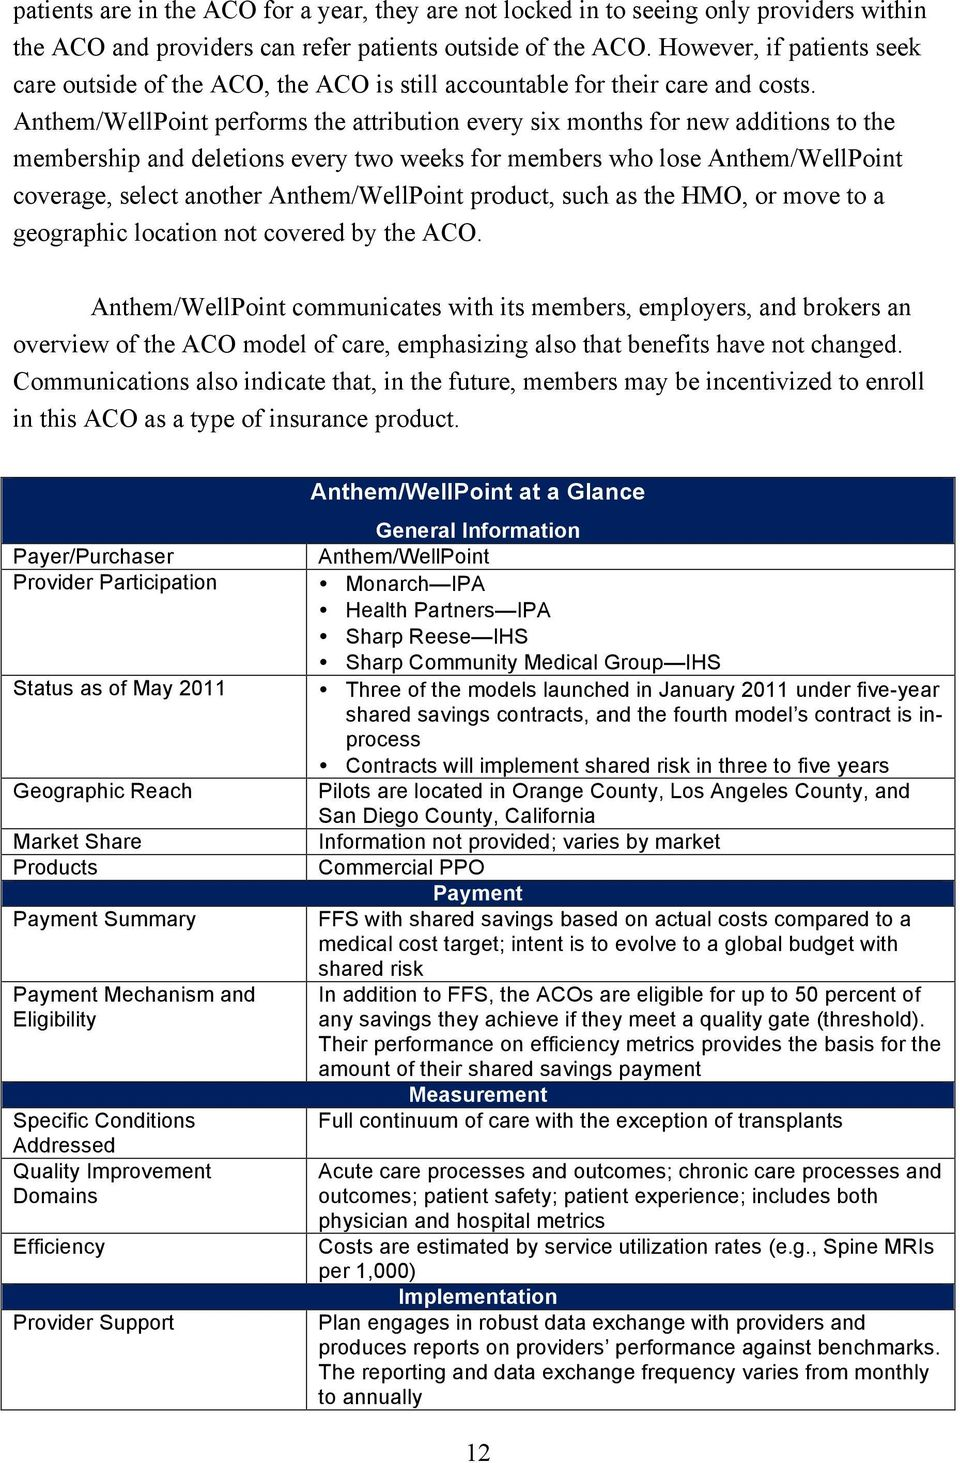 Anthem/WellPoint performs the attribution every six months for new additions to the membership and deletions every two weeks for members who lose Anthem/WellPoint coverage, select another